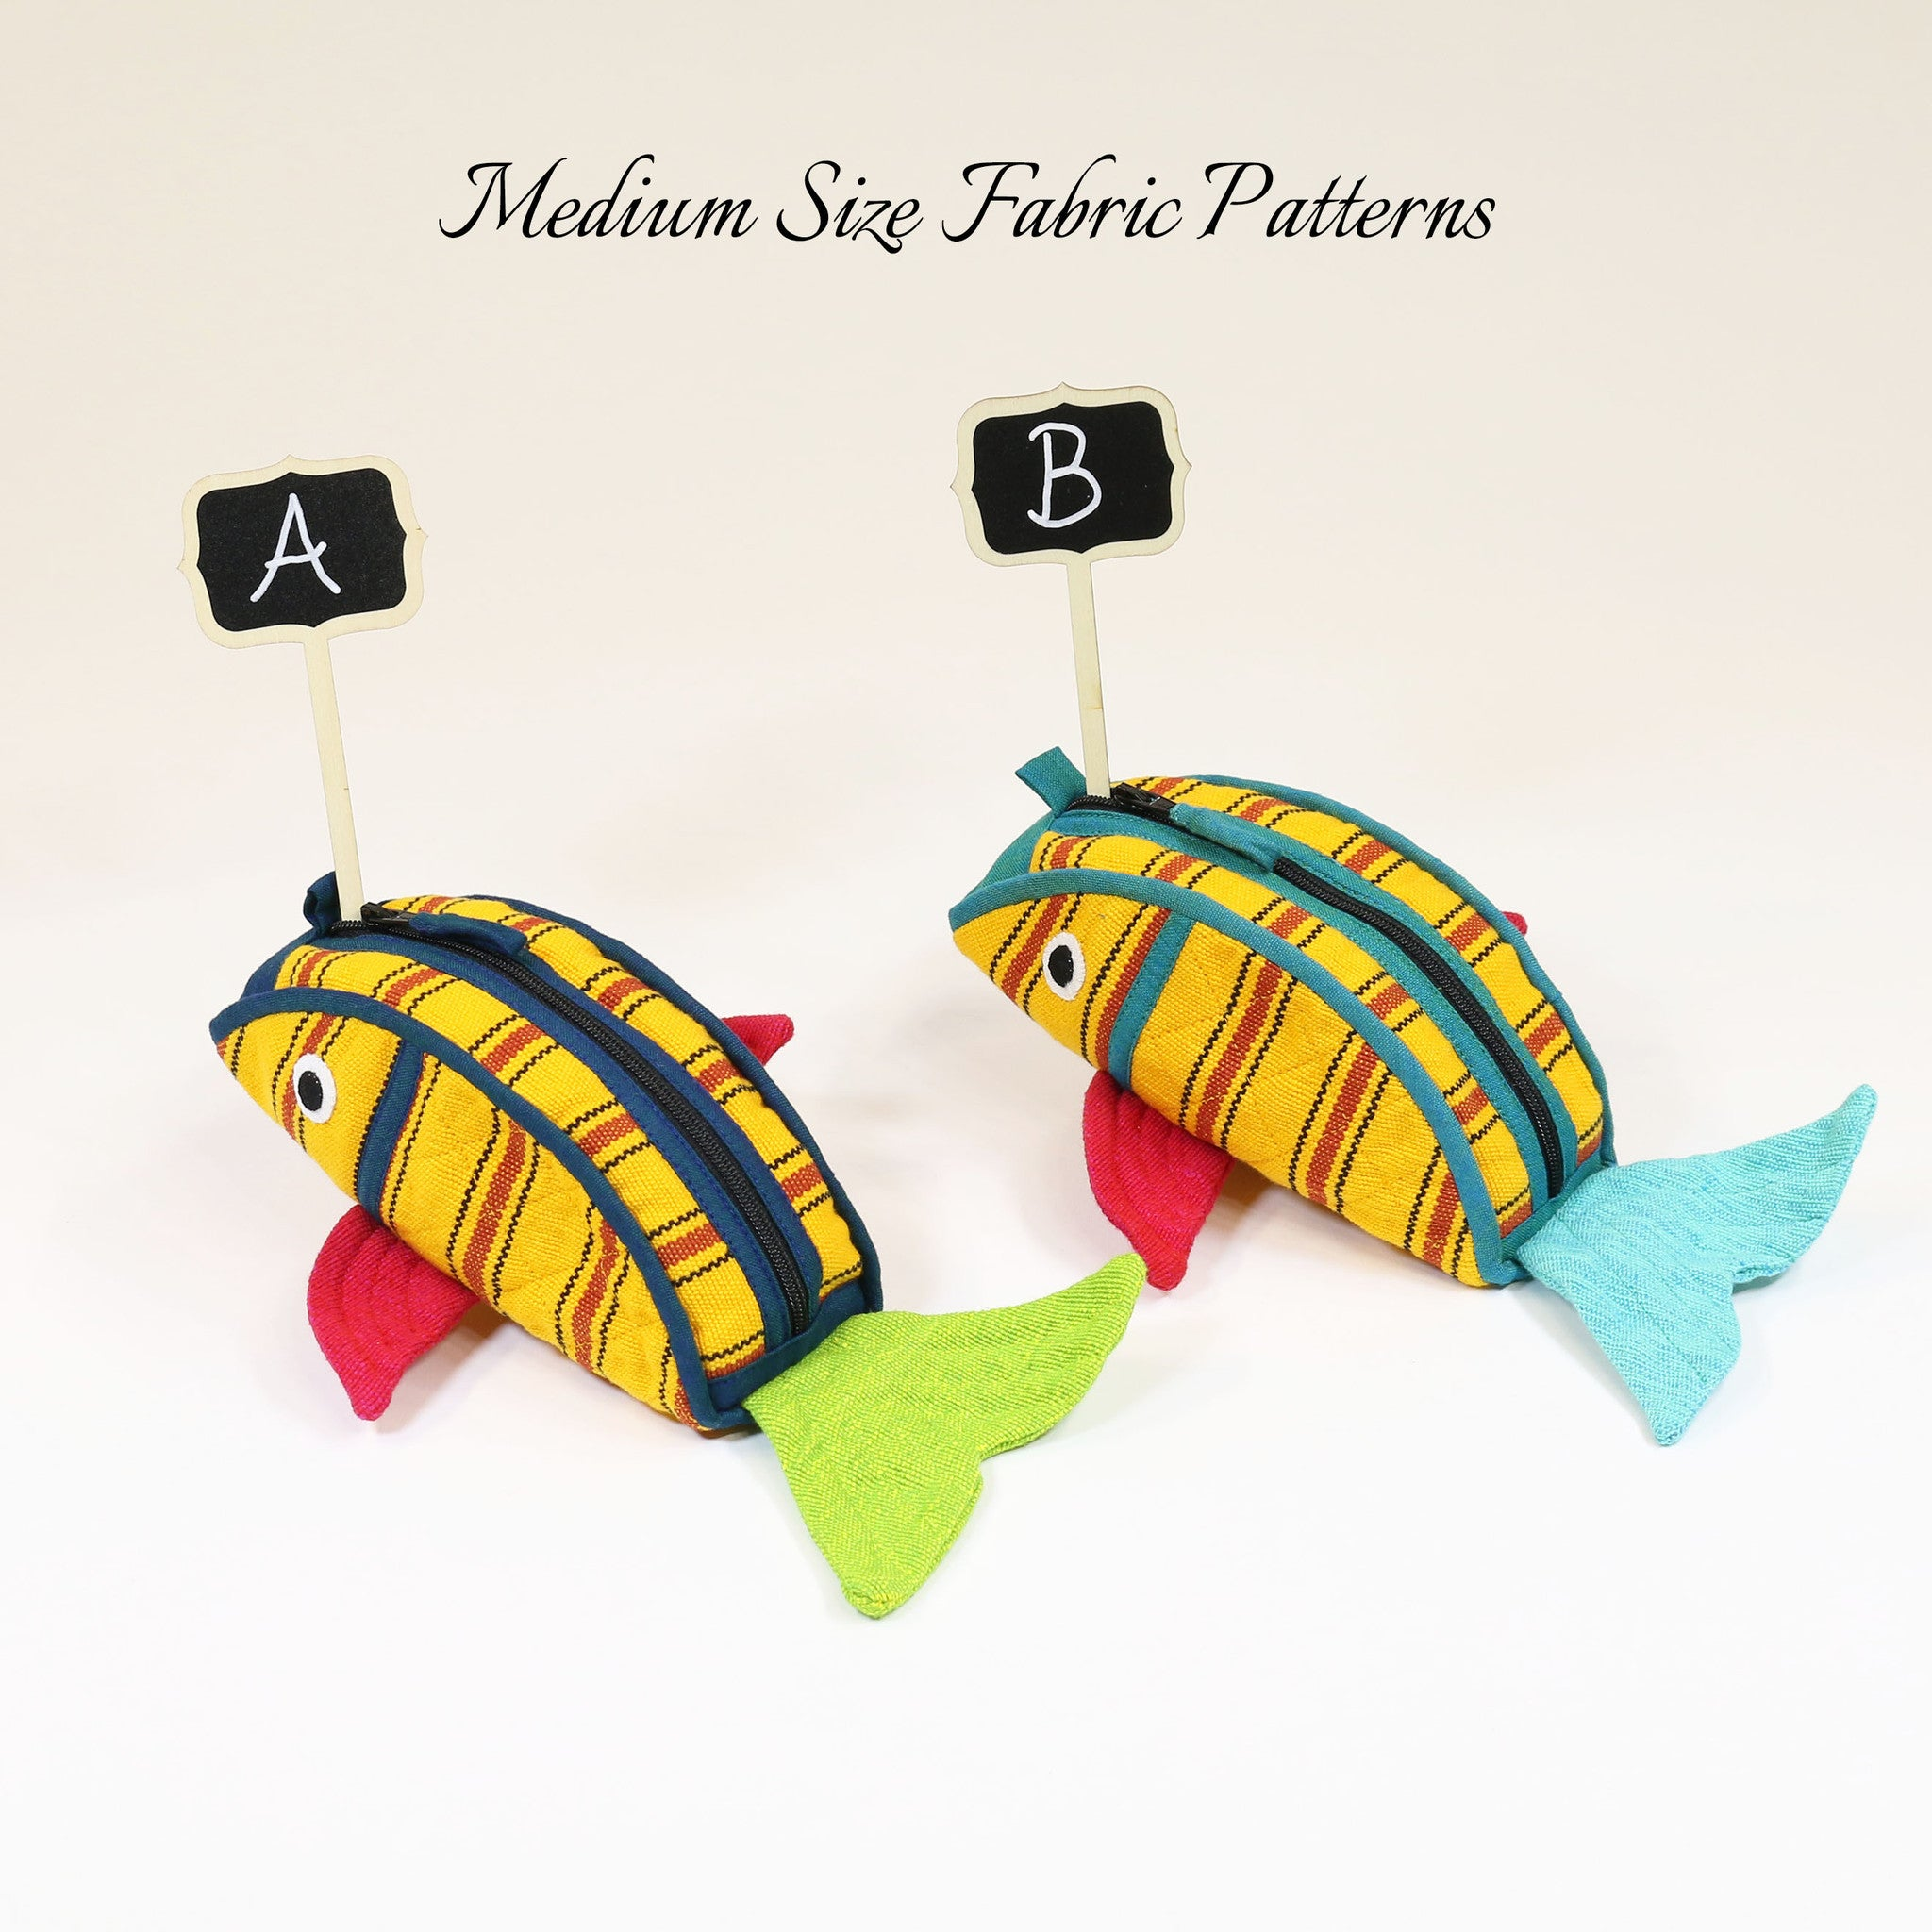 Fish Zip Pouch – all medium size Juicy Fruit fabric patterns shown